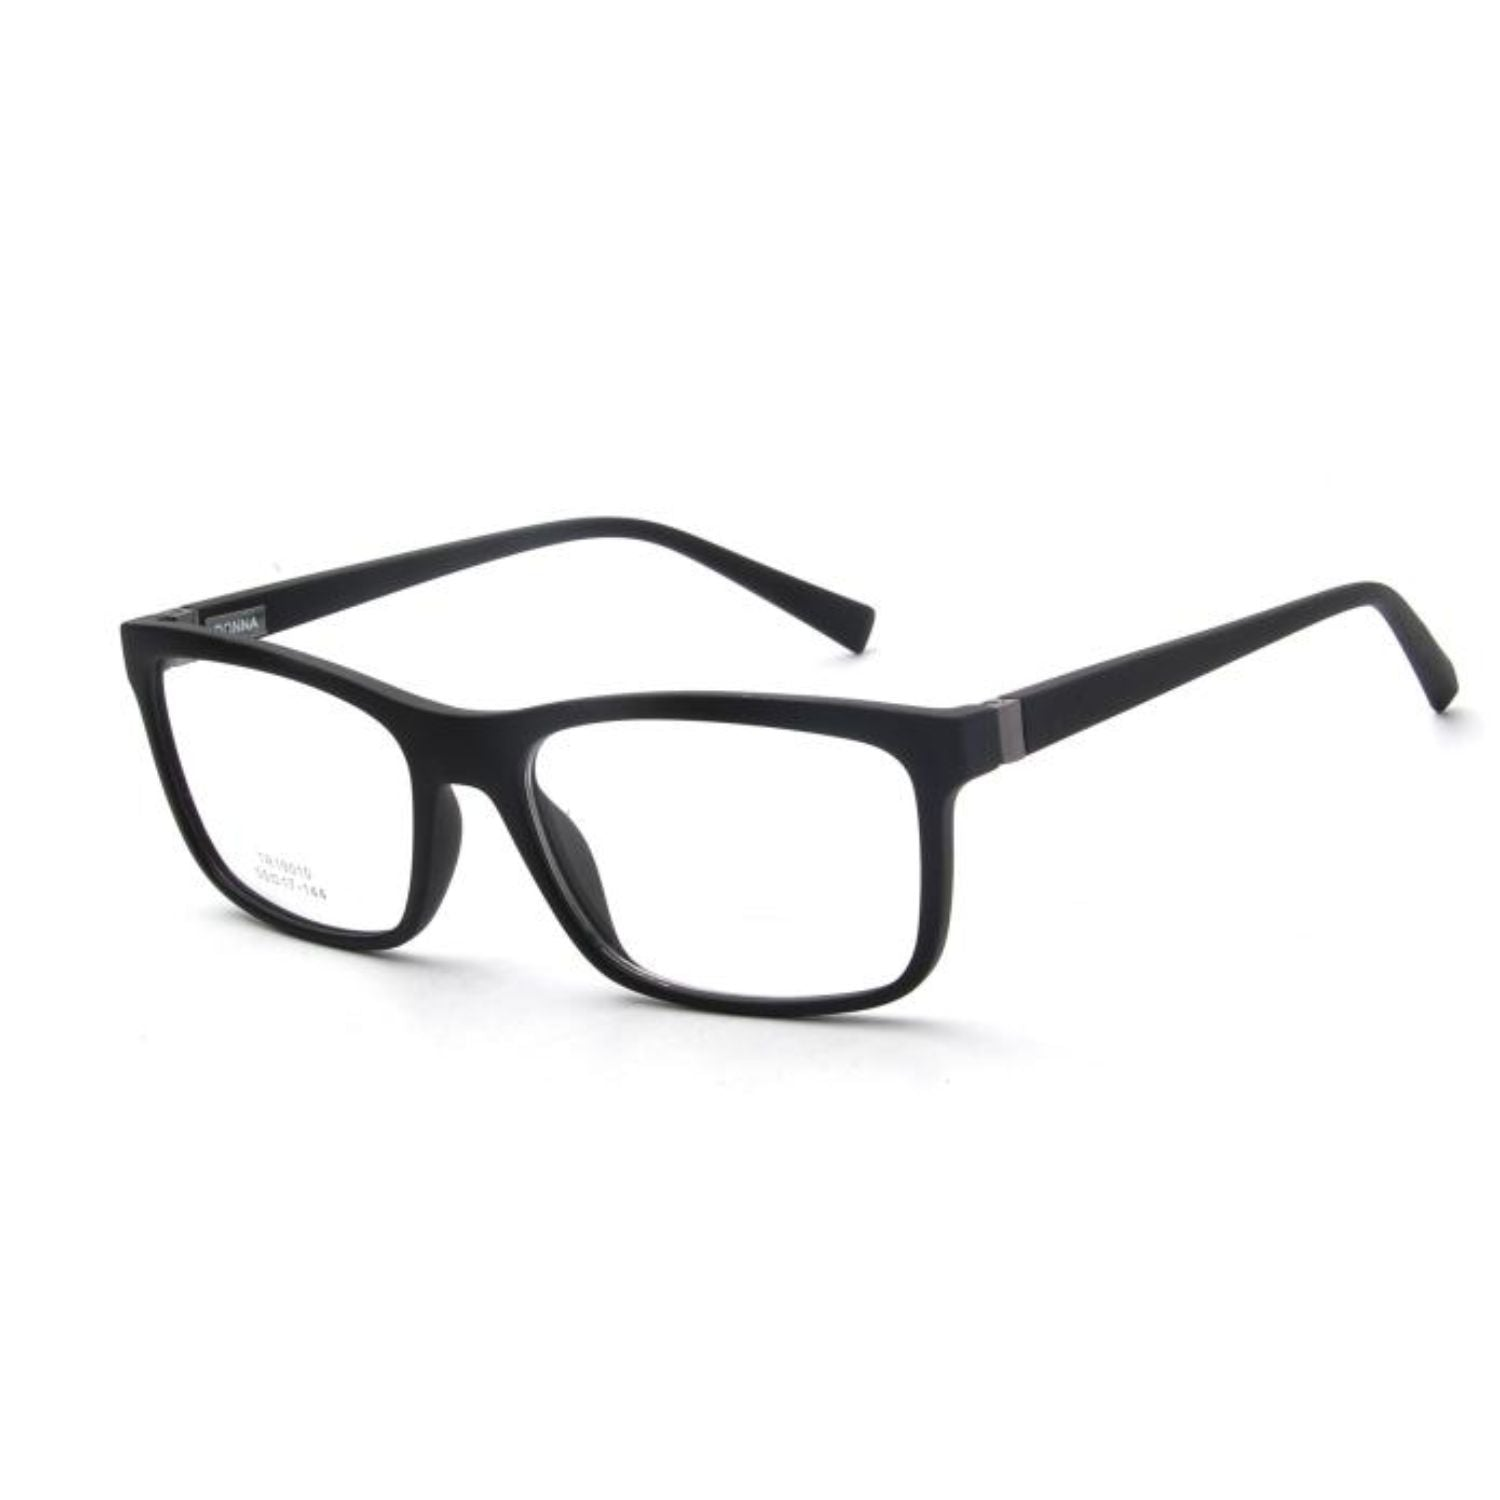 OTR19 - Classic Rectangle Optical Eyeglasses - Iris Fashion Inc. | Wholesale Sunglasses and Glasses